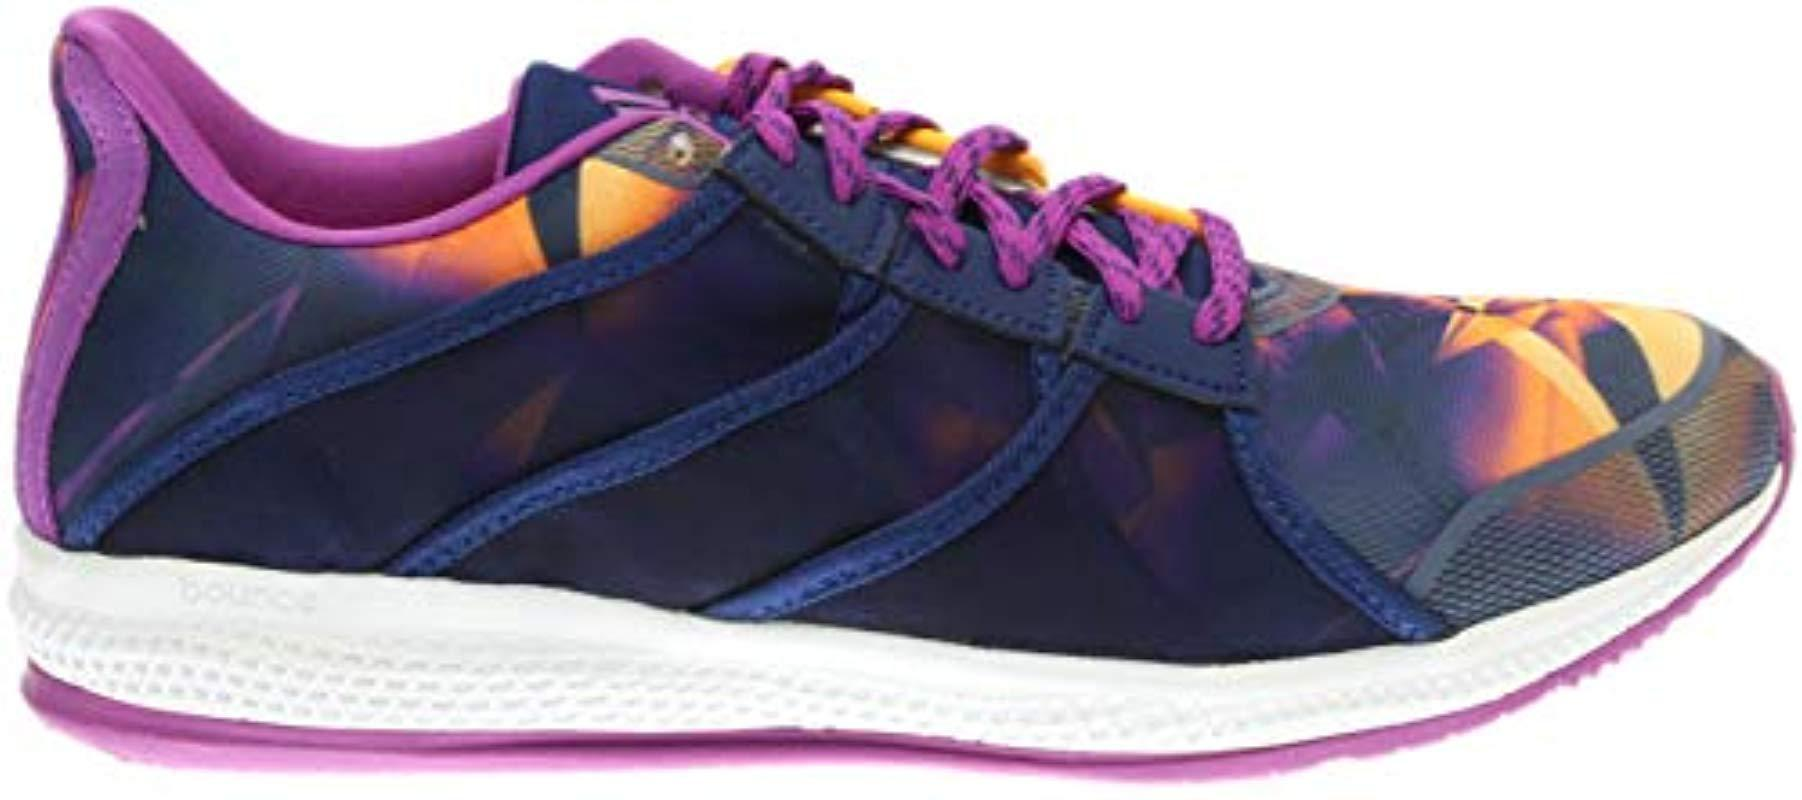 huge selection of 7c98c 7156f Adidas - Purple Performance Gymbreaker Bounce Cross-trainer Shoe - Lyst.  View fullscreen